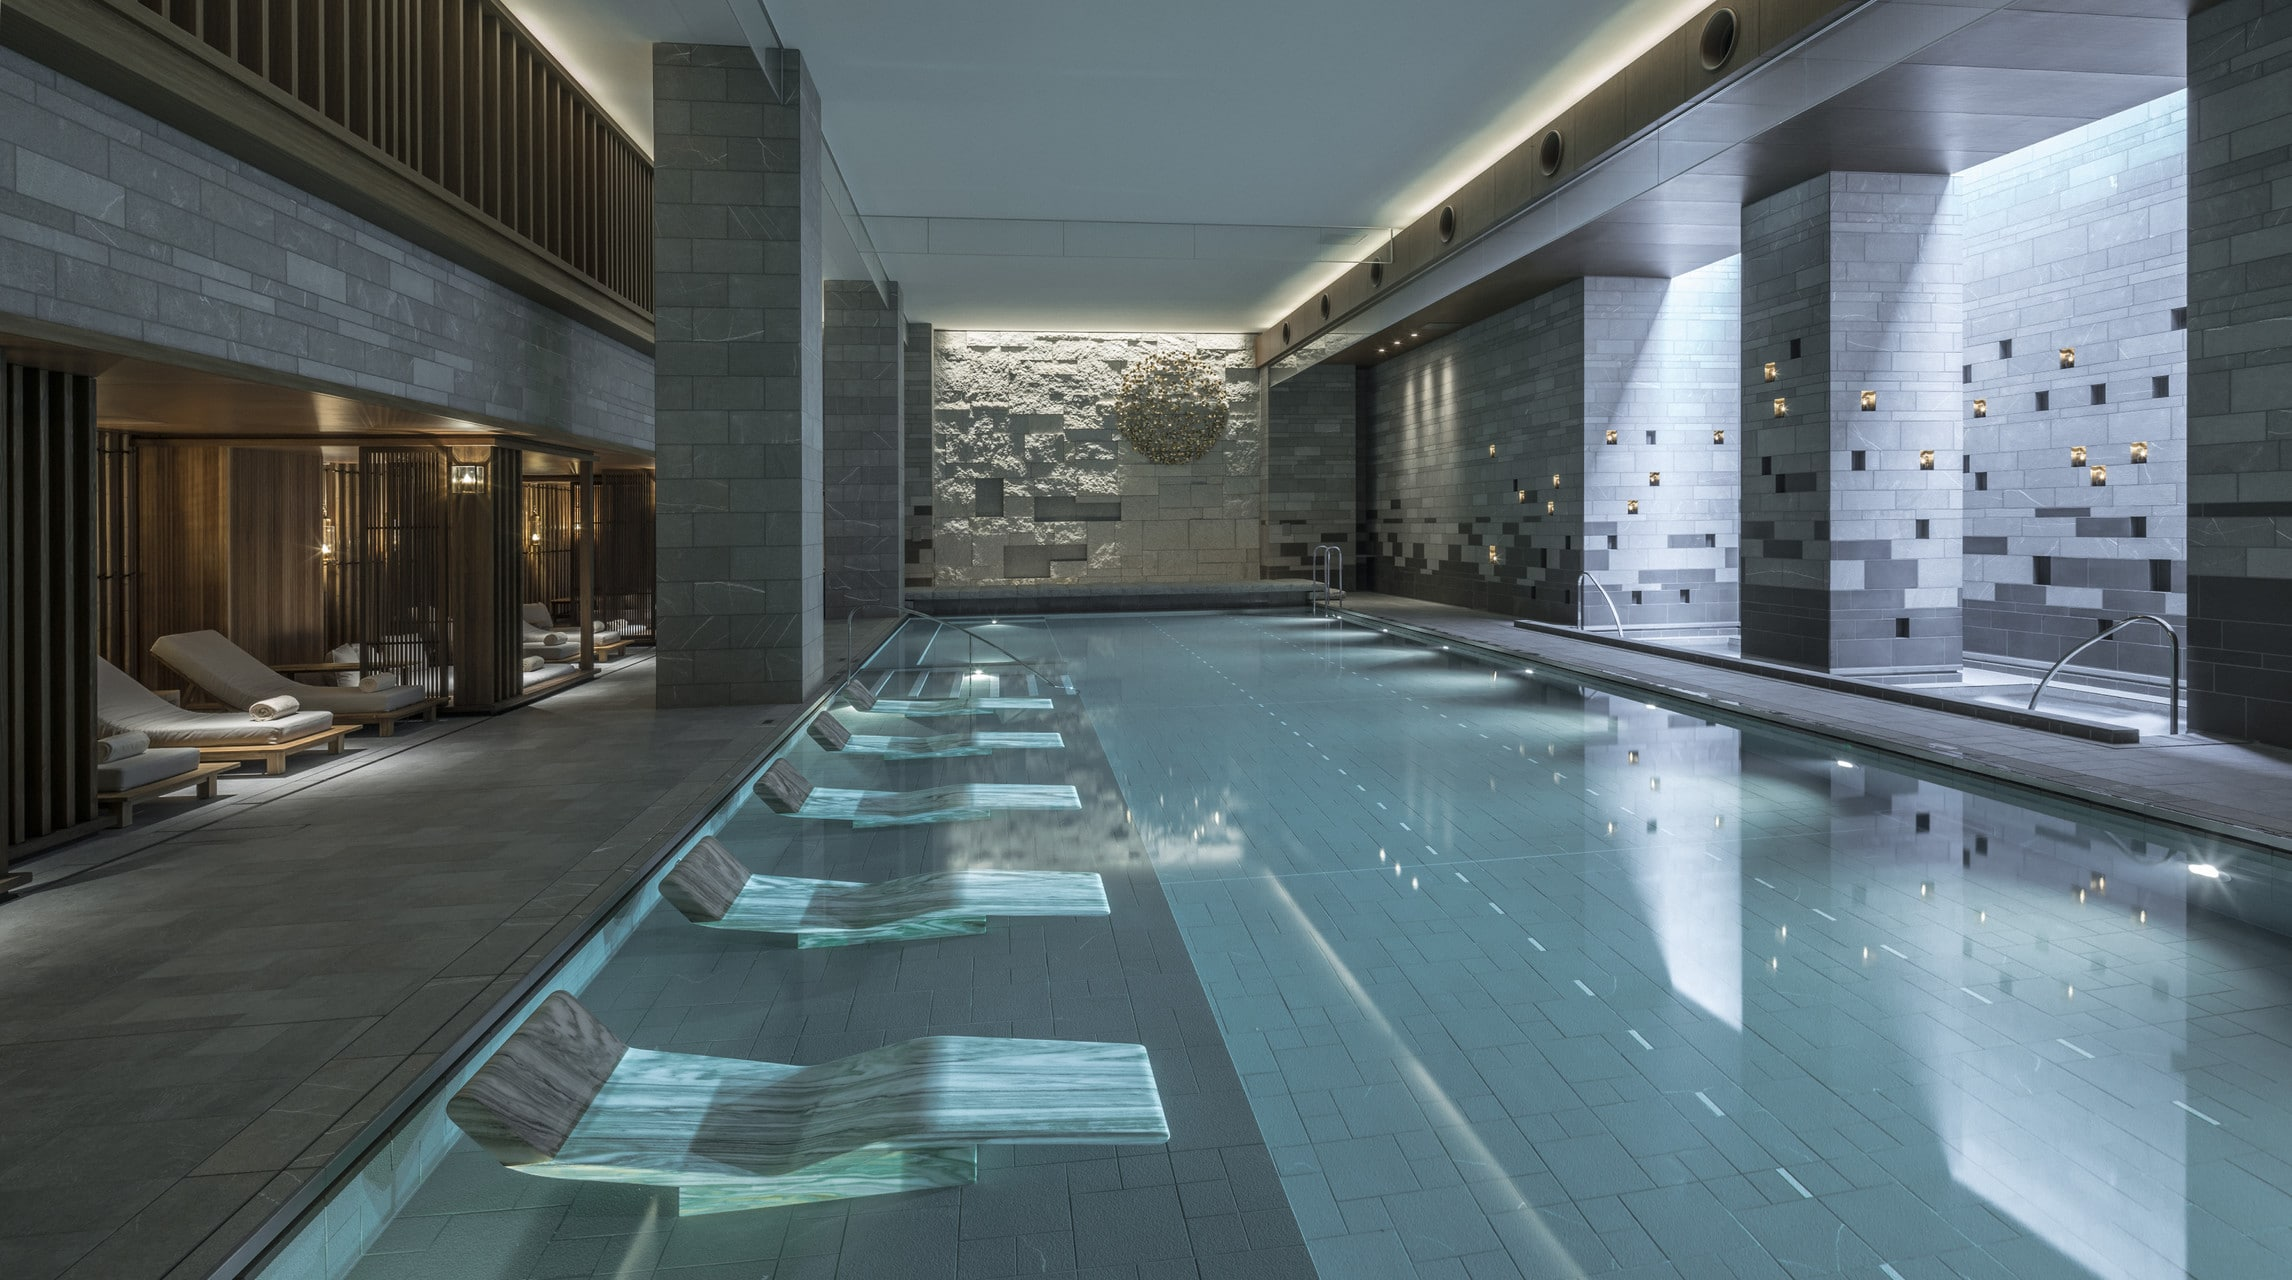 The sleek indoor pool with in-water lounge chairs and swimming lanes.